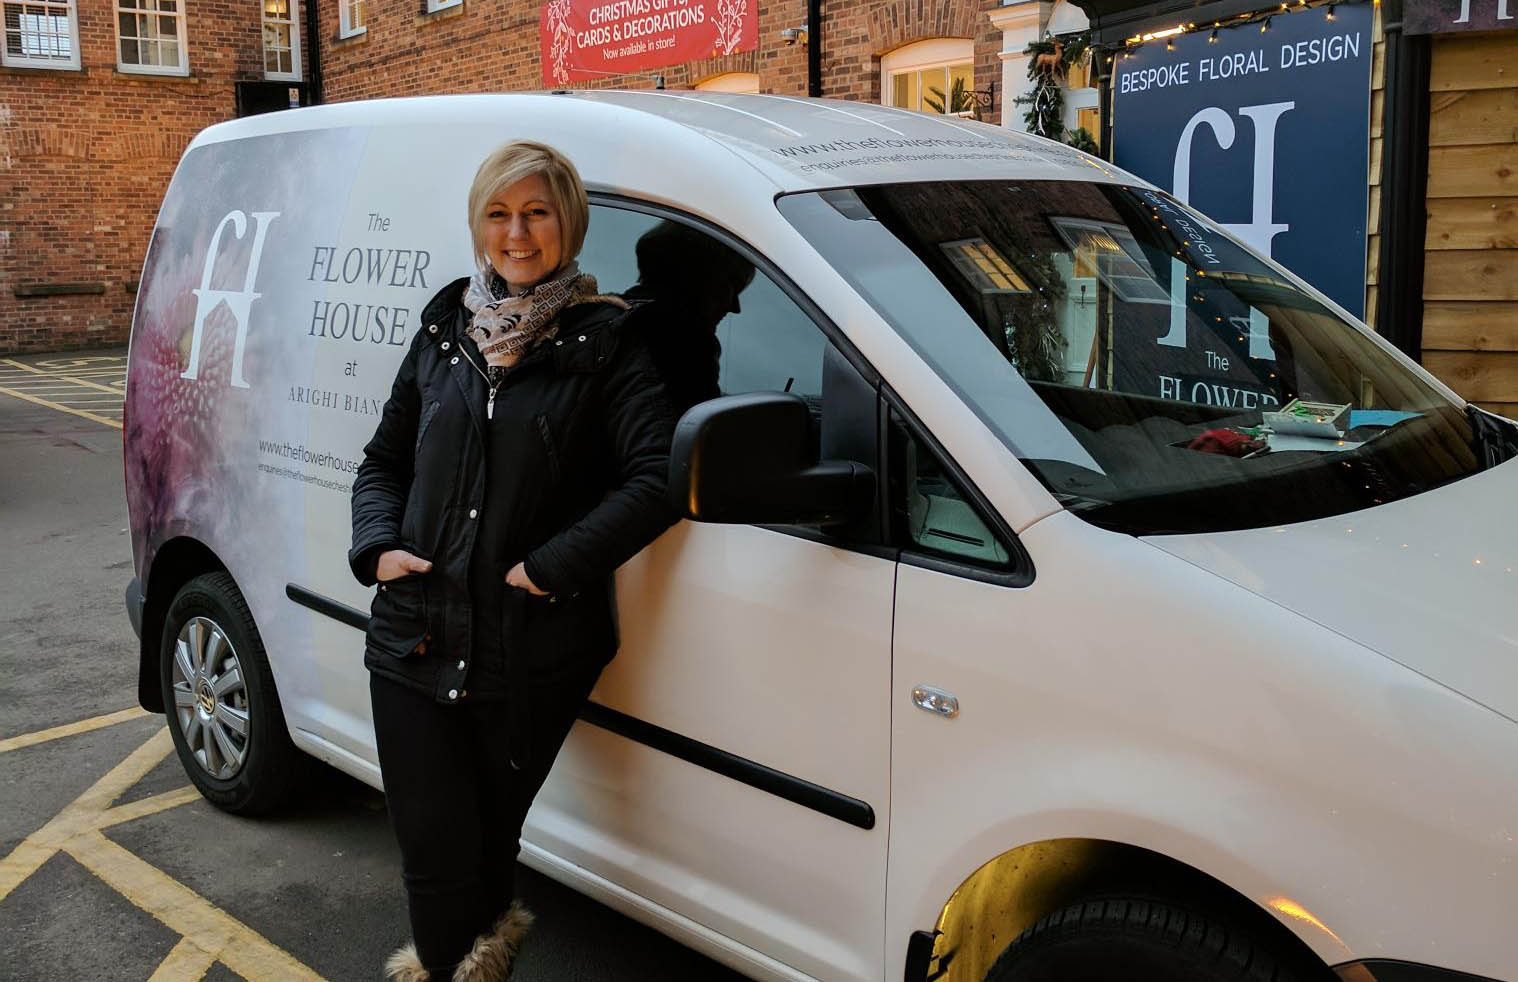 372e6bfbbc The white van woman is on the rise - The Leader Newspaper